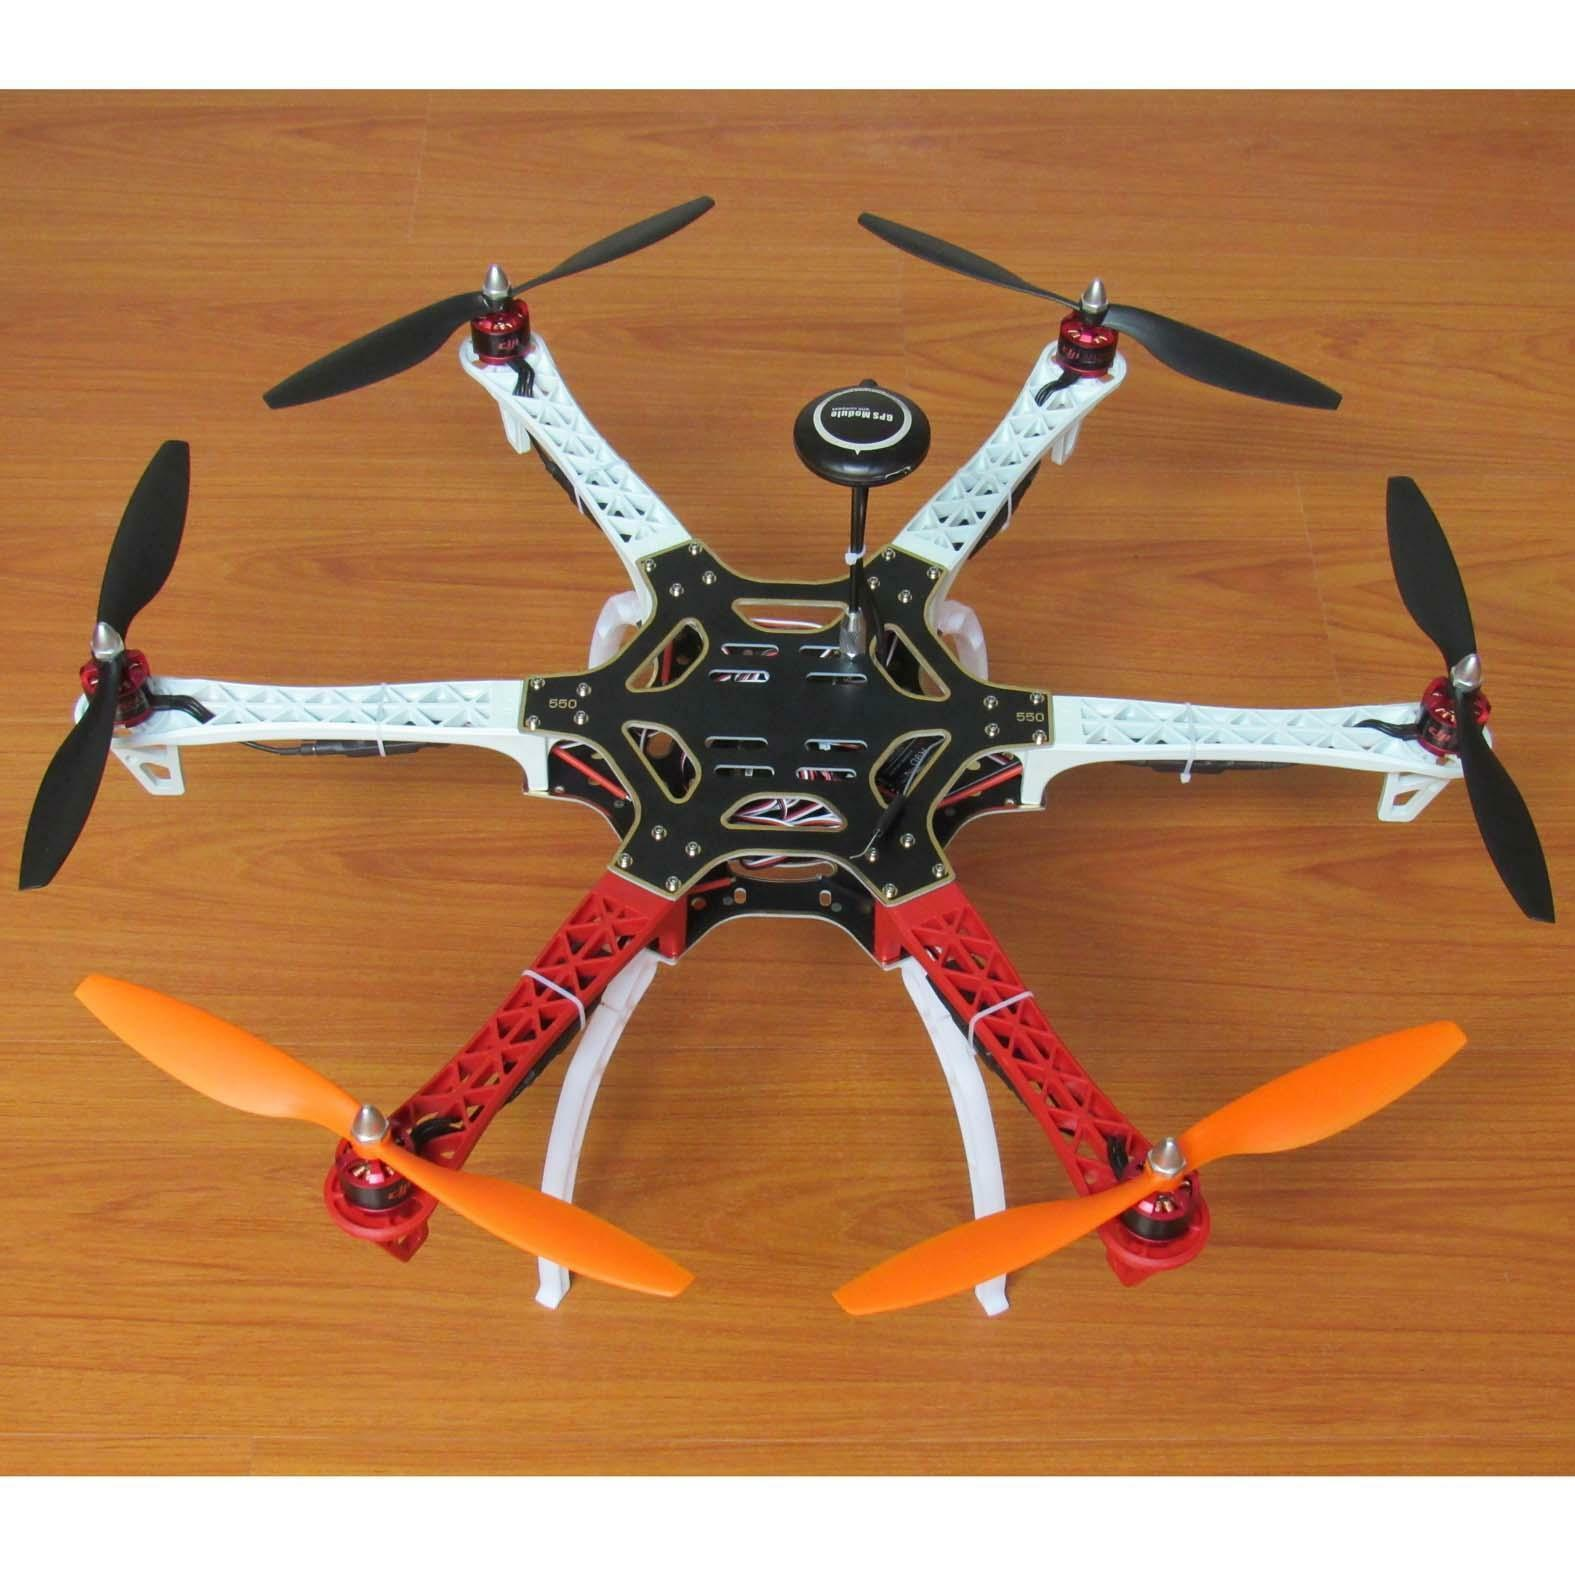 Diy - f550 hexacopter pixhawk px4 flight control neo-7m gps - ppm - 2212 920kv 30a